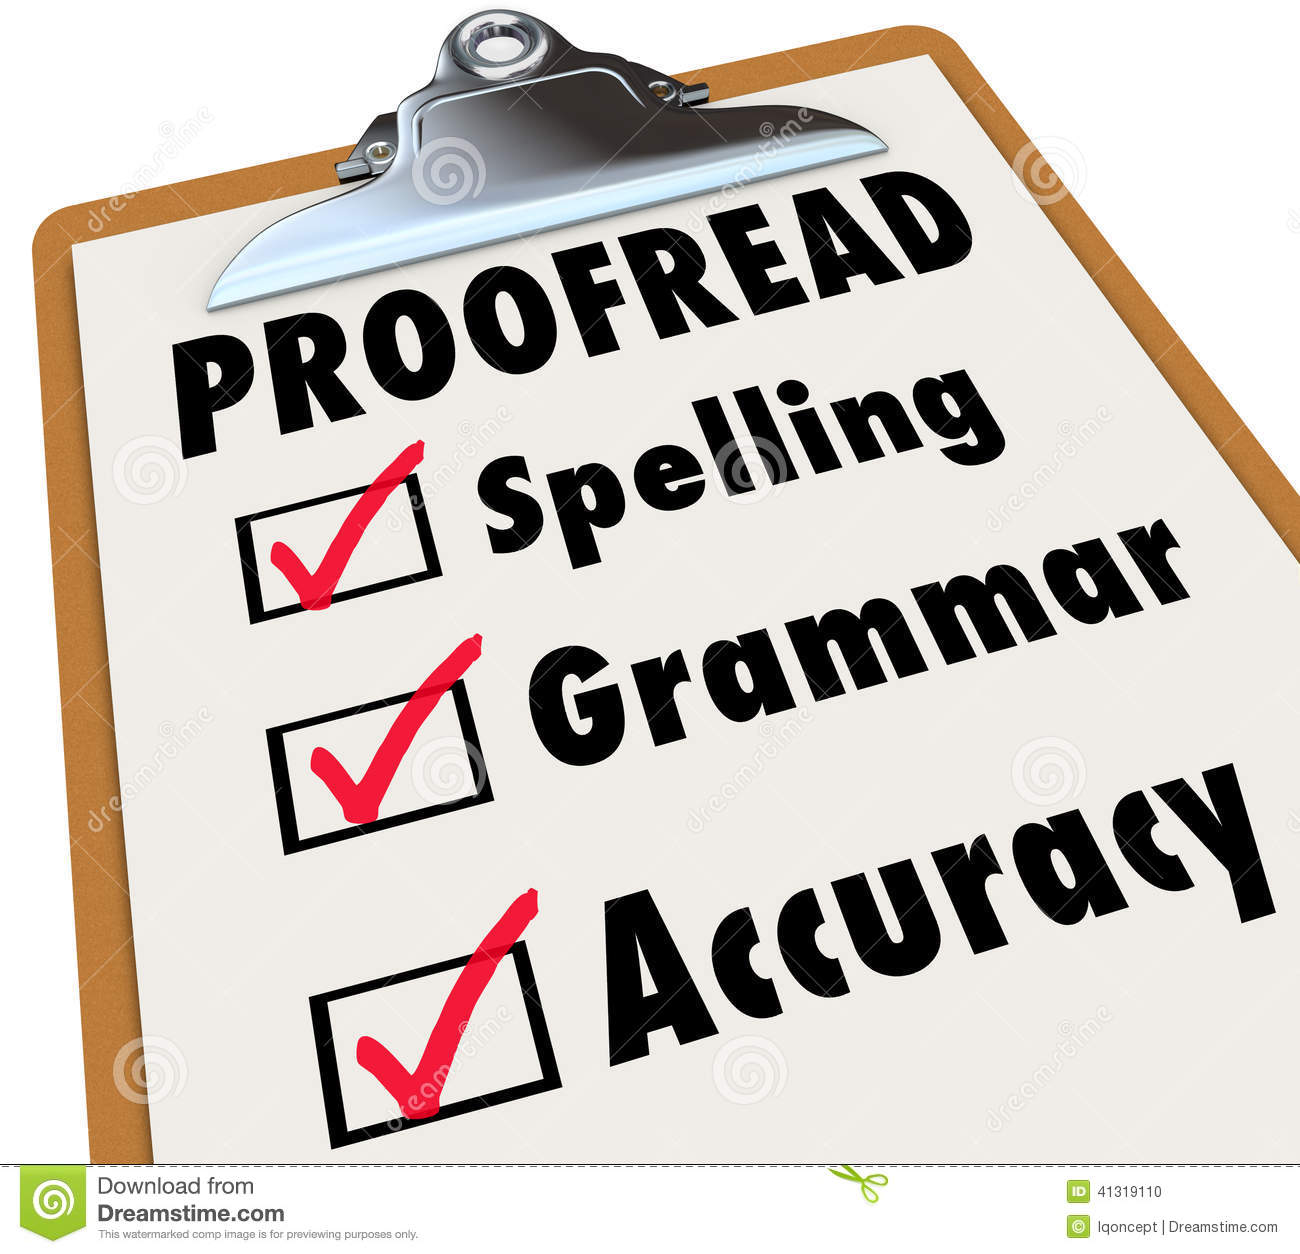 essay proofreading steps to proofreading an essay custom paper cheap proofreading top dissertation writing companies londoncheap proofreading